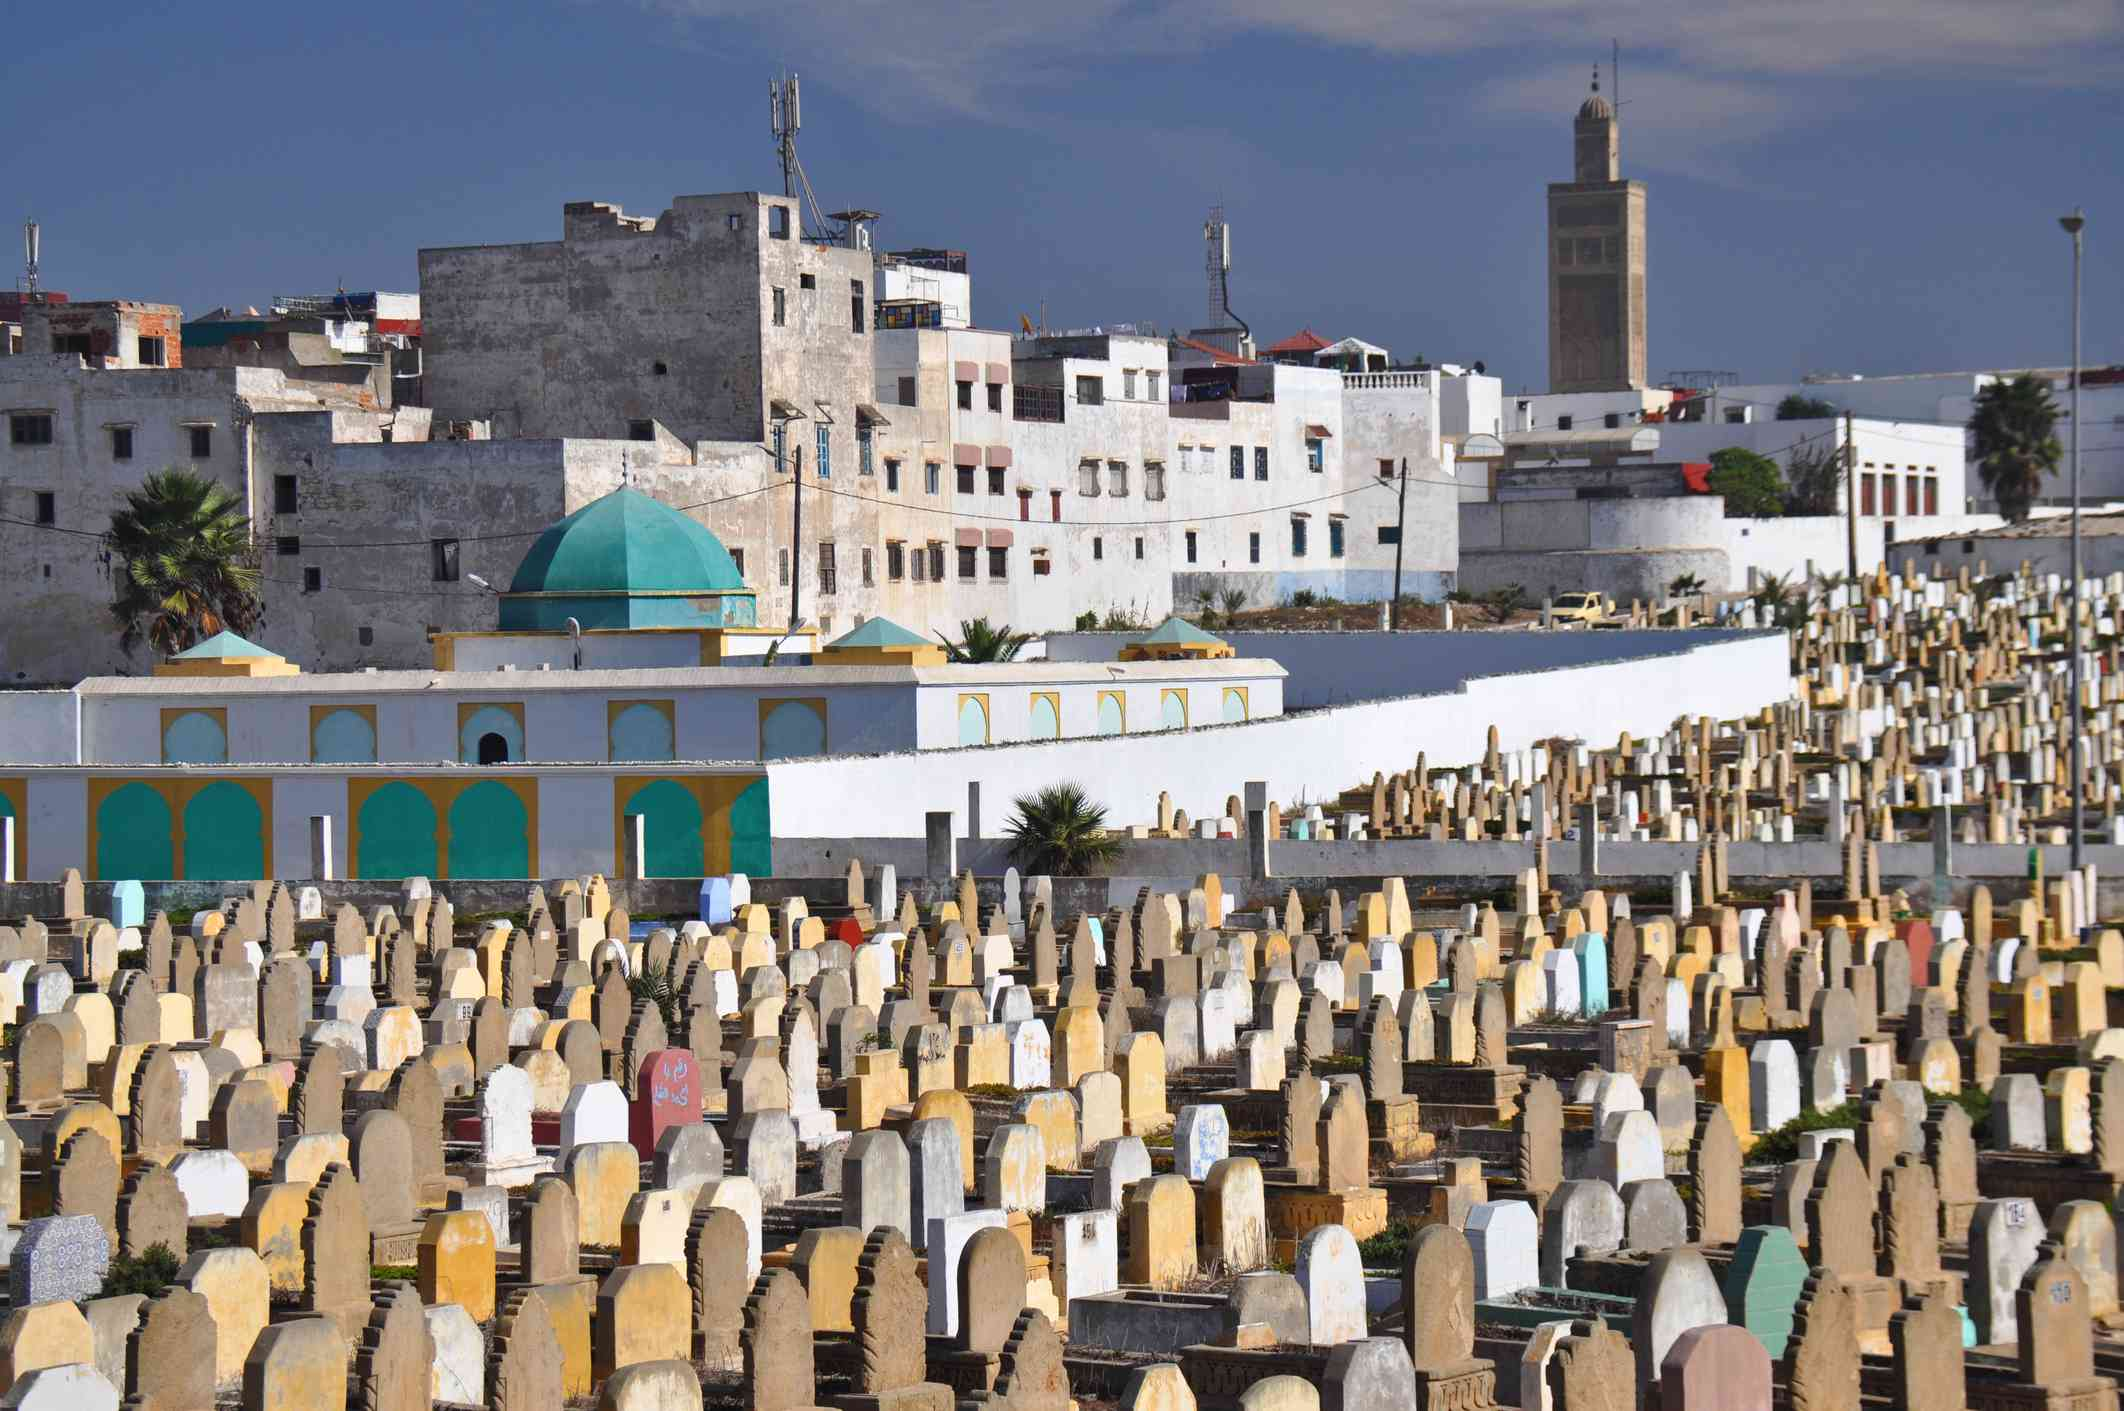 View of Salé city and mosque with graveyard in the foreground